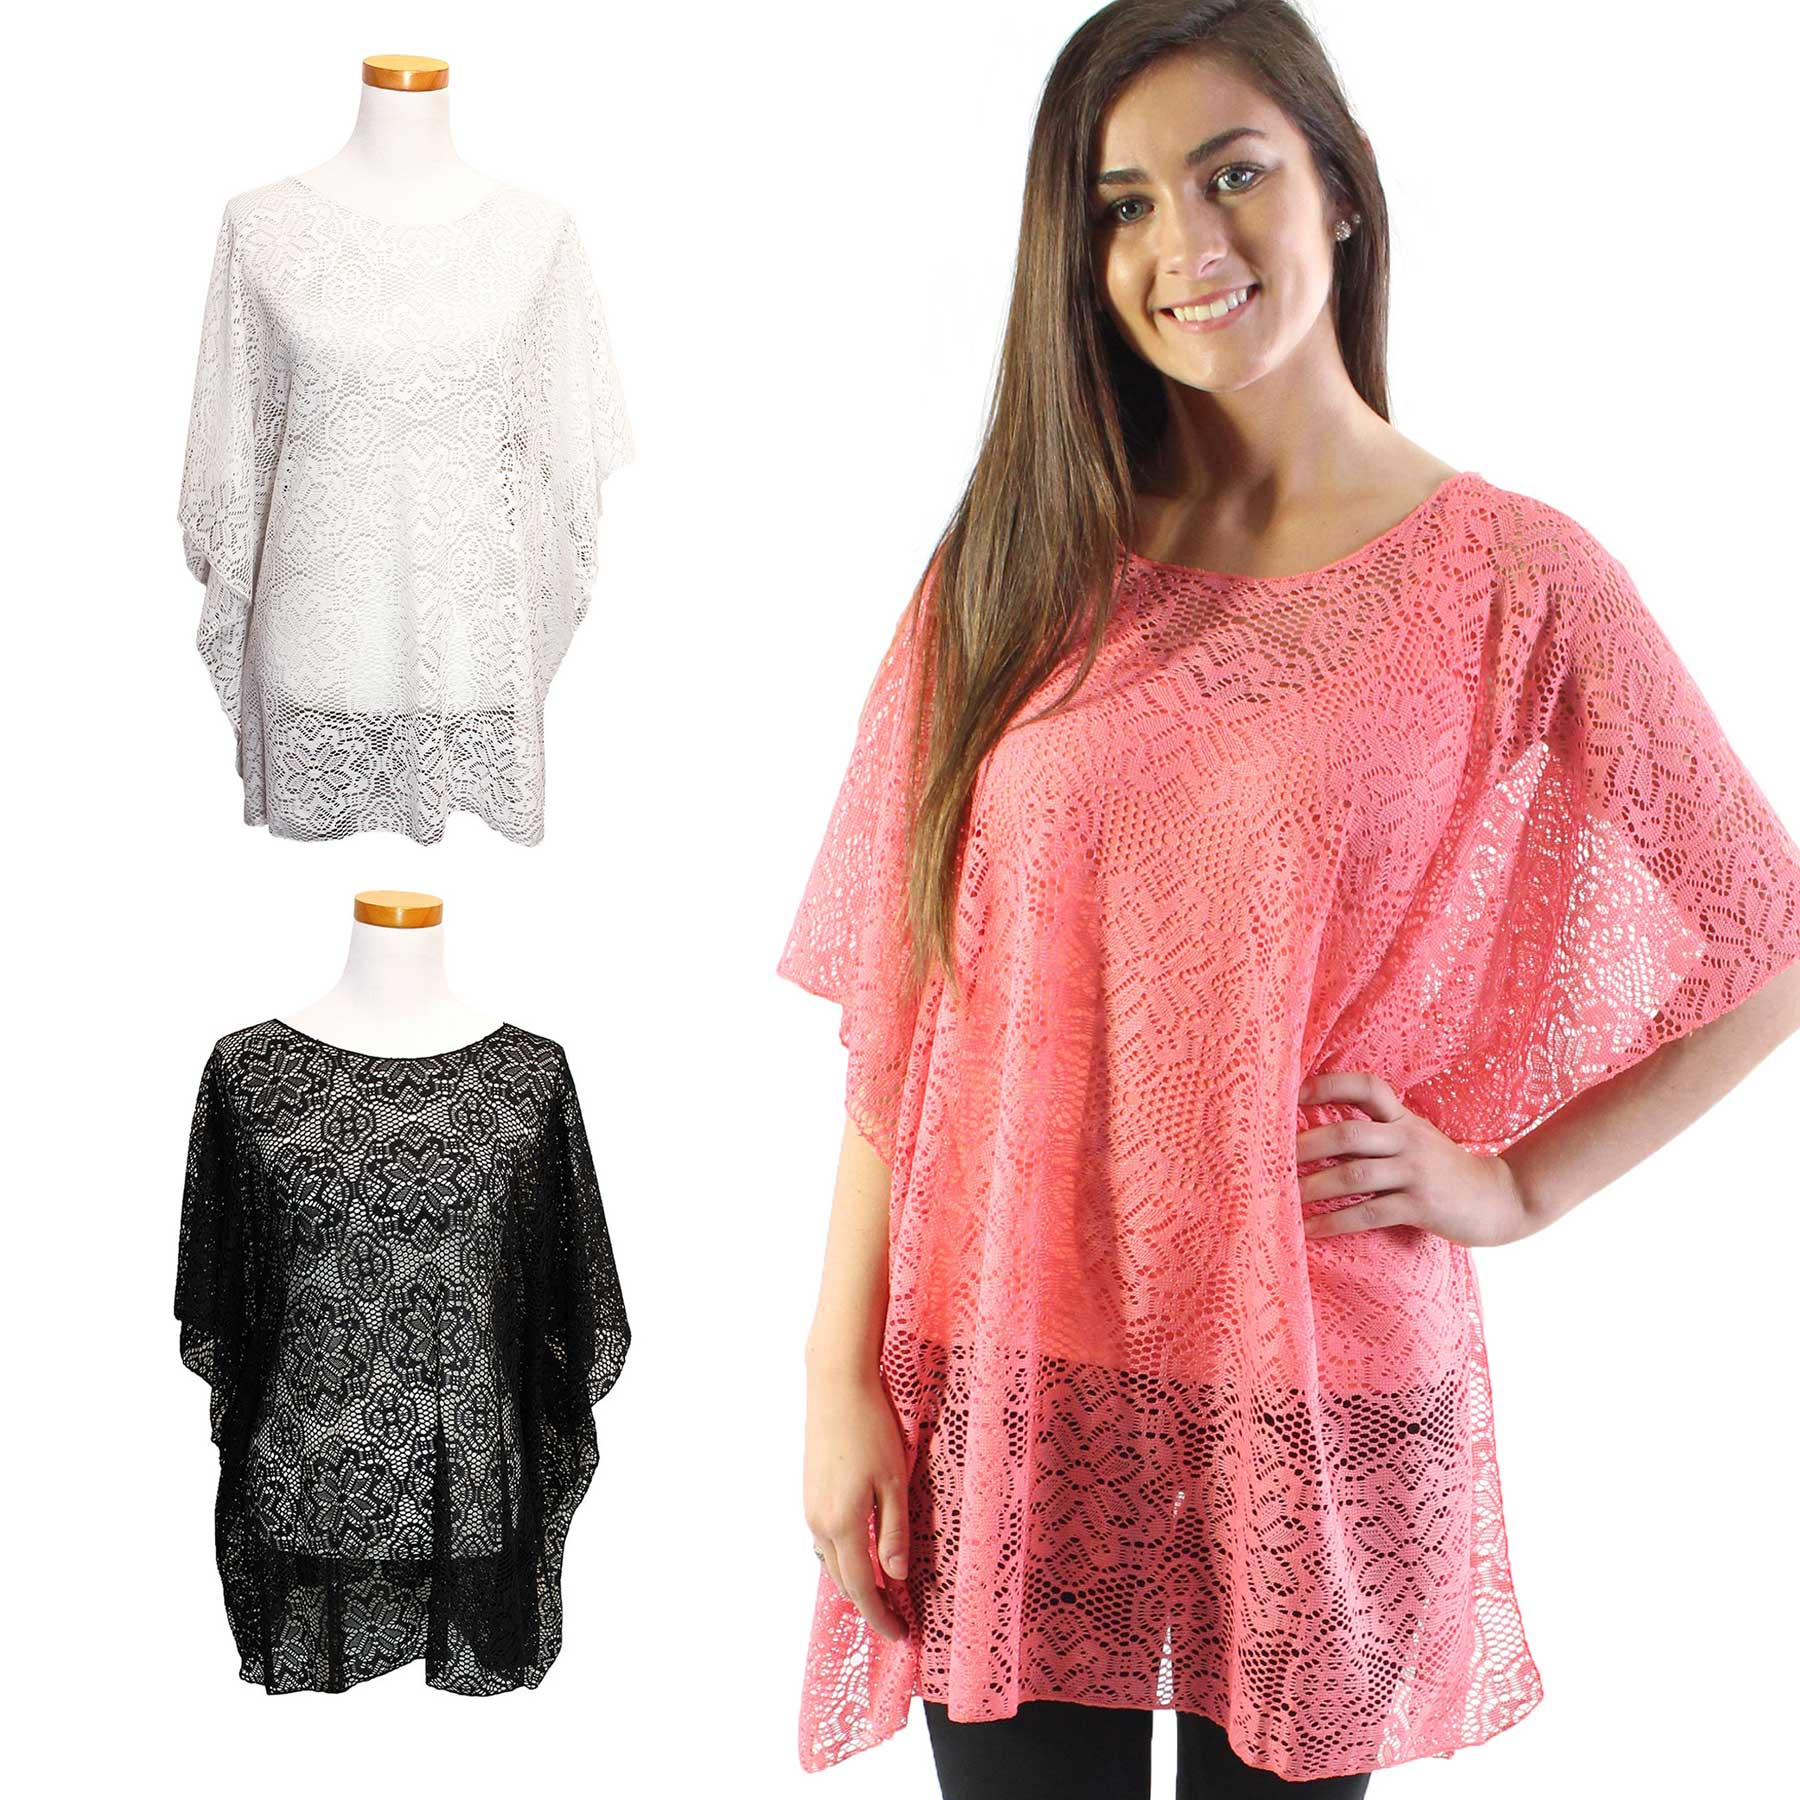 Poncho - Flower Lace 1203